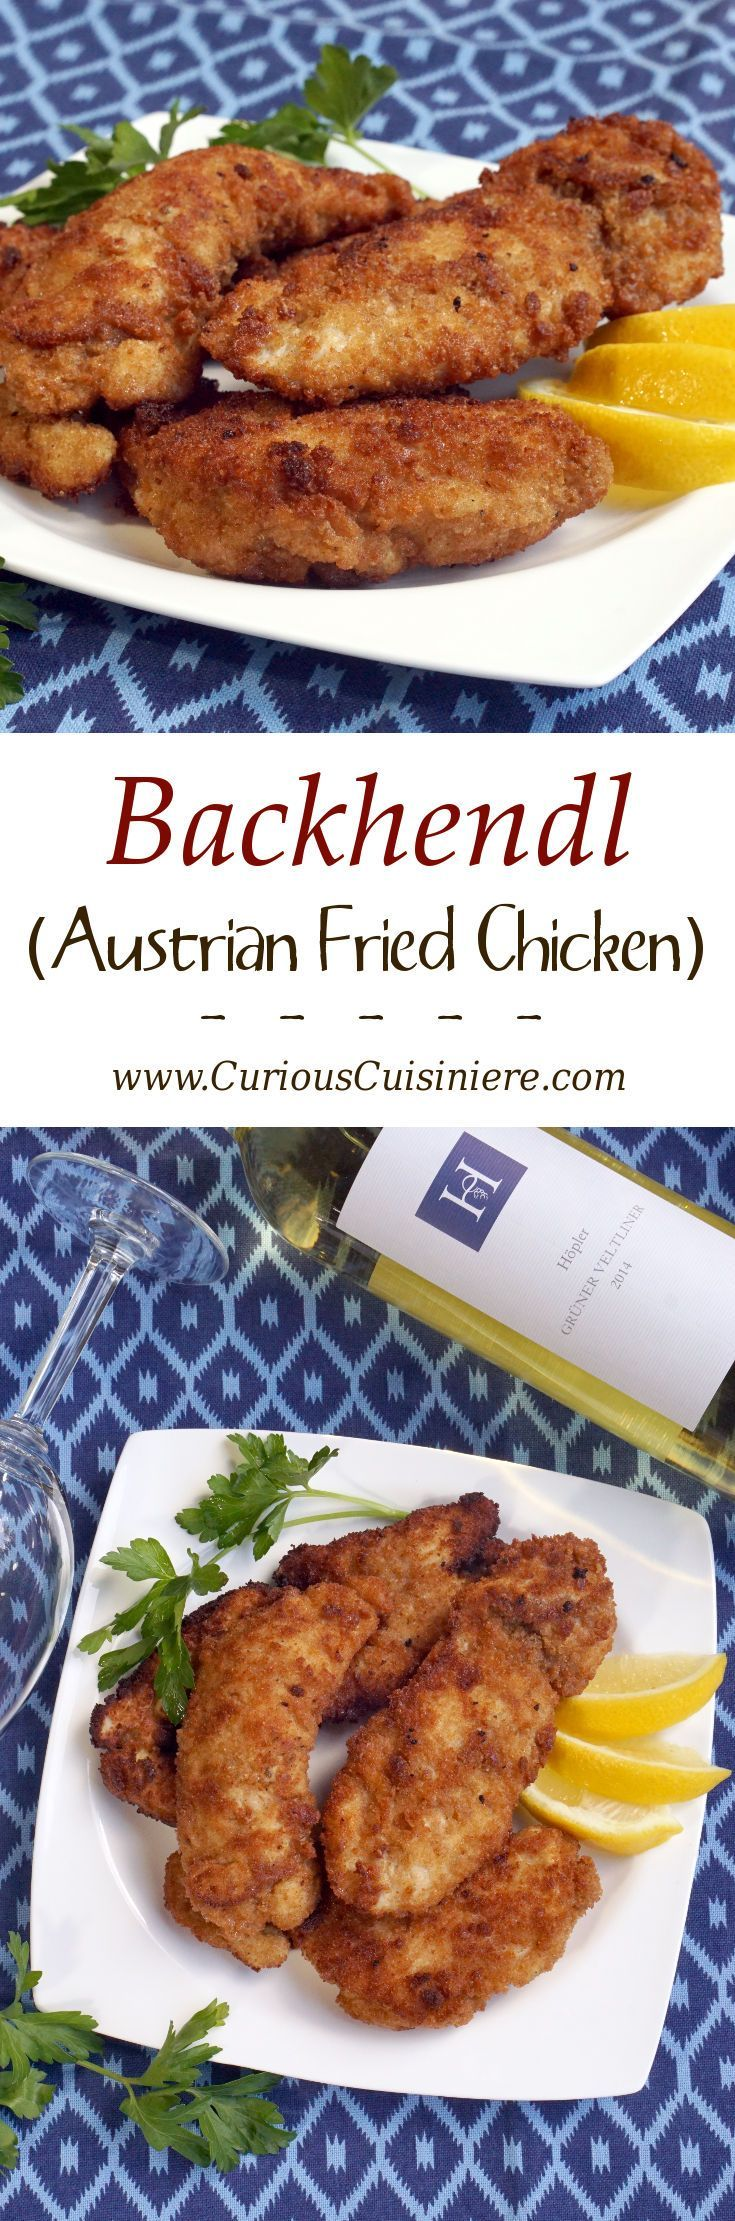 Backhendl (Austrian Fried Chicken) and Grüner Veltliner #winePW : curiouscuisiniere